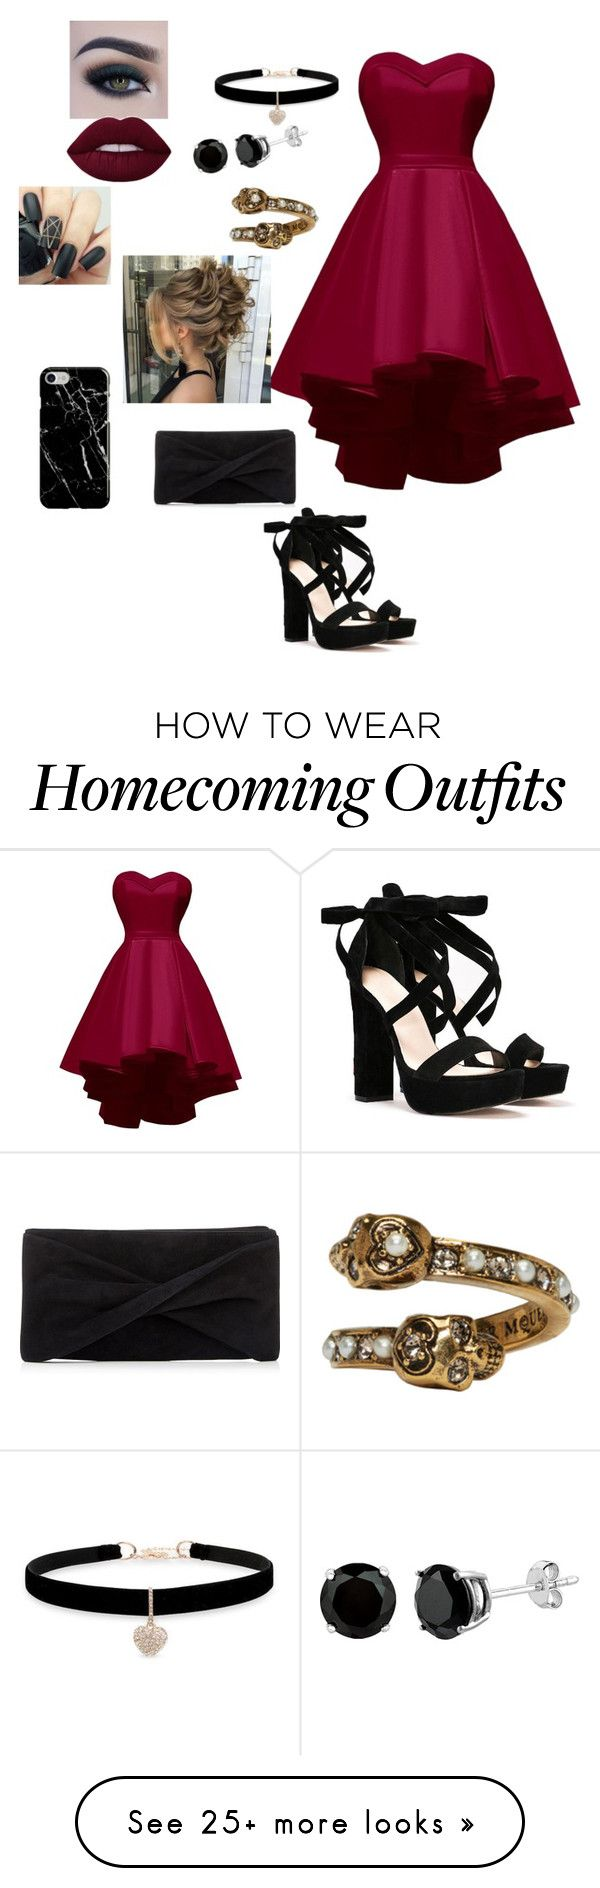 """Untitled #1027"" by crystalrose-014 on Polyvore featuring Nasty Gal, Reiss, Betsey Johnson, Alexander McQueen, Too Faced Cosmetics and Recover"